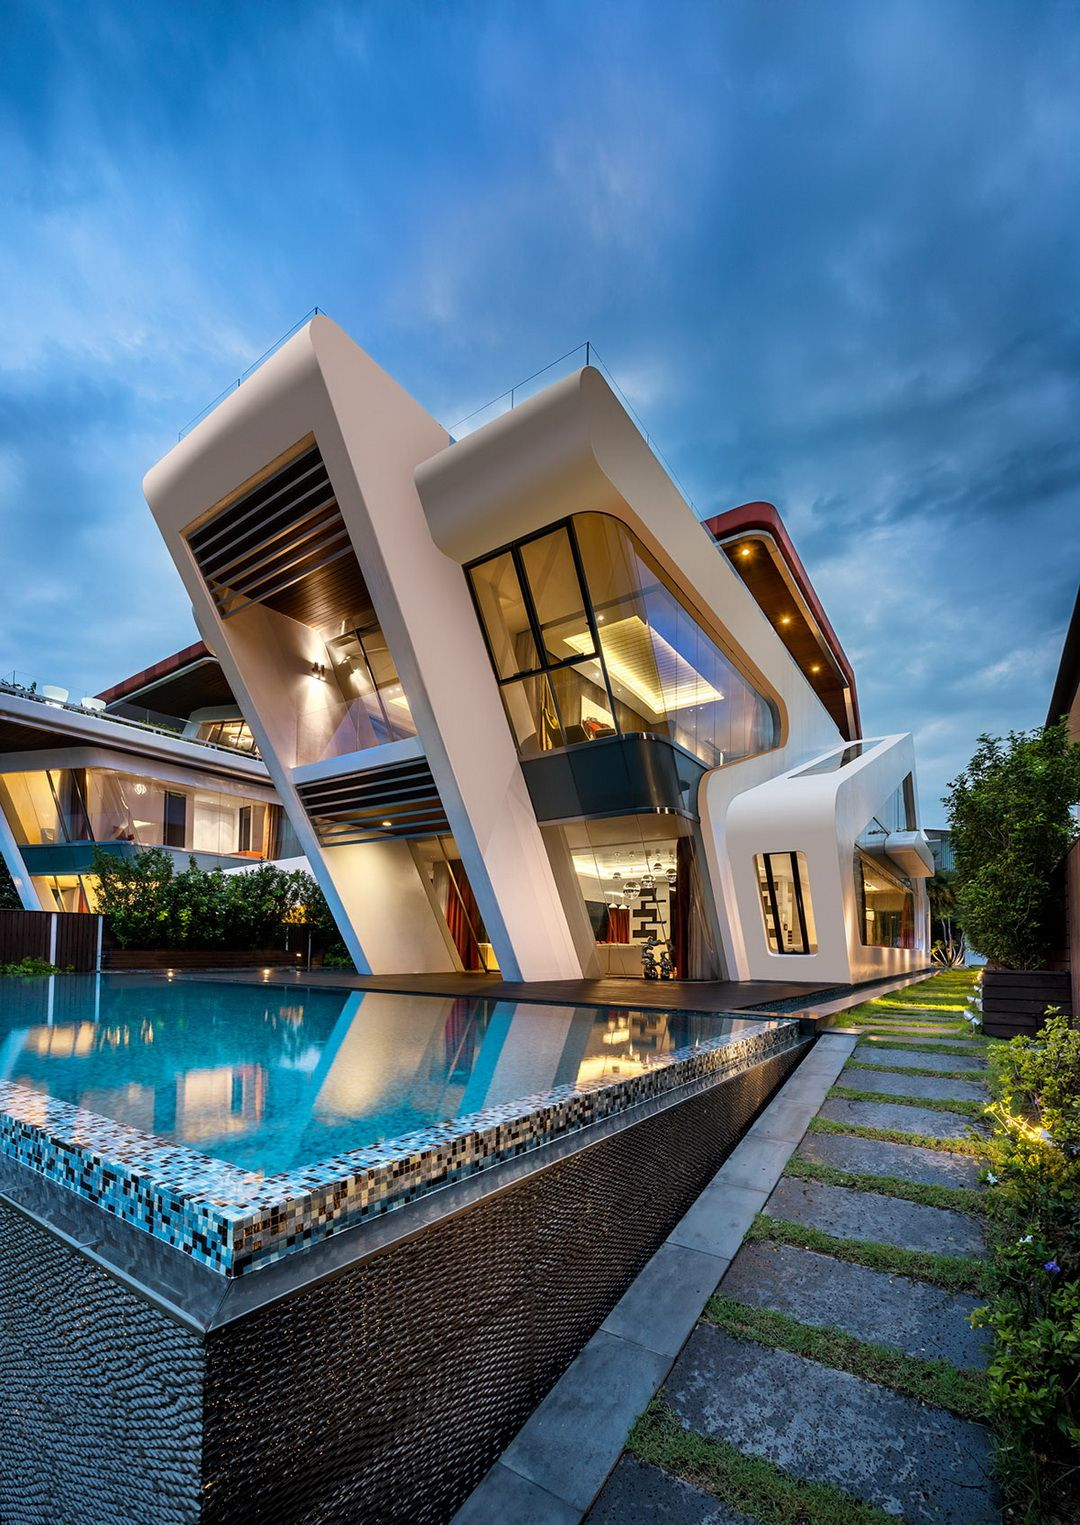 Mercurio Design Lab Create a Modern Villa